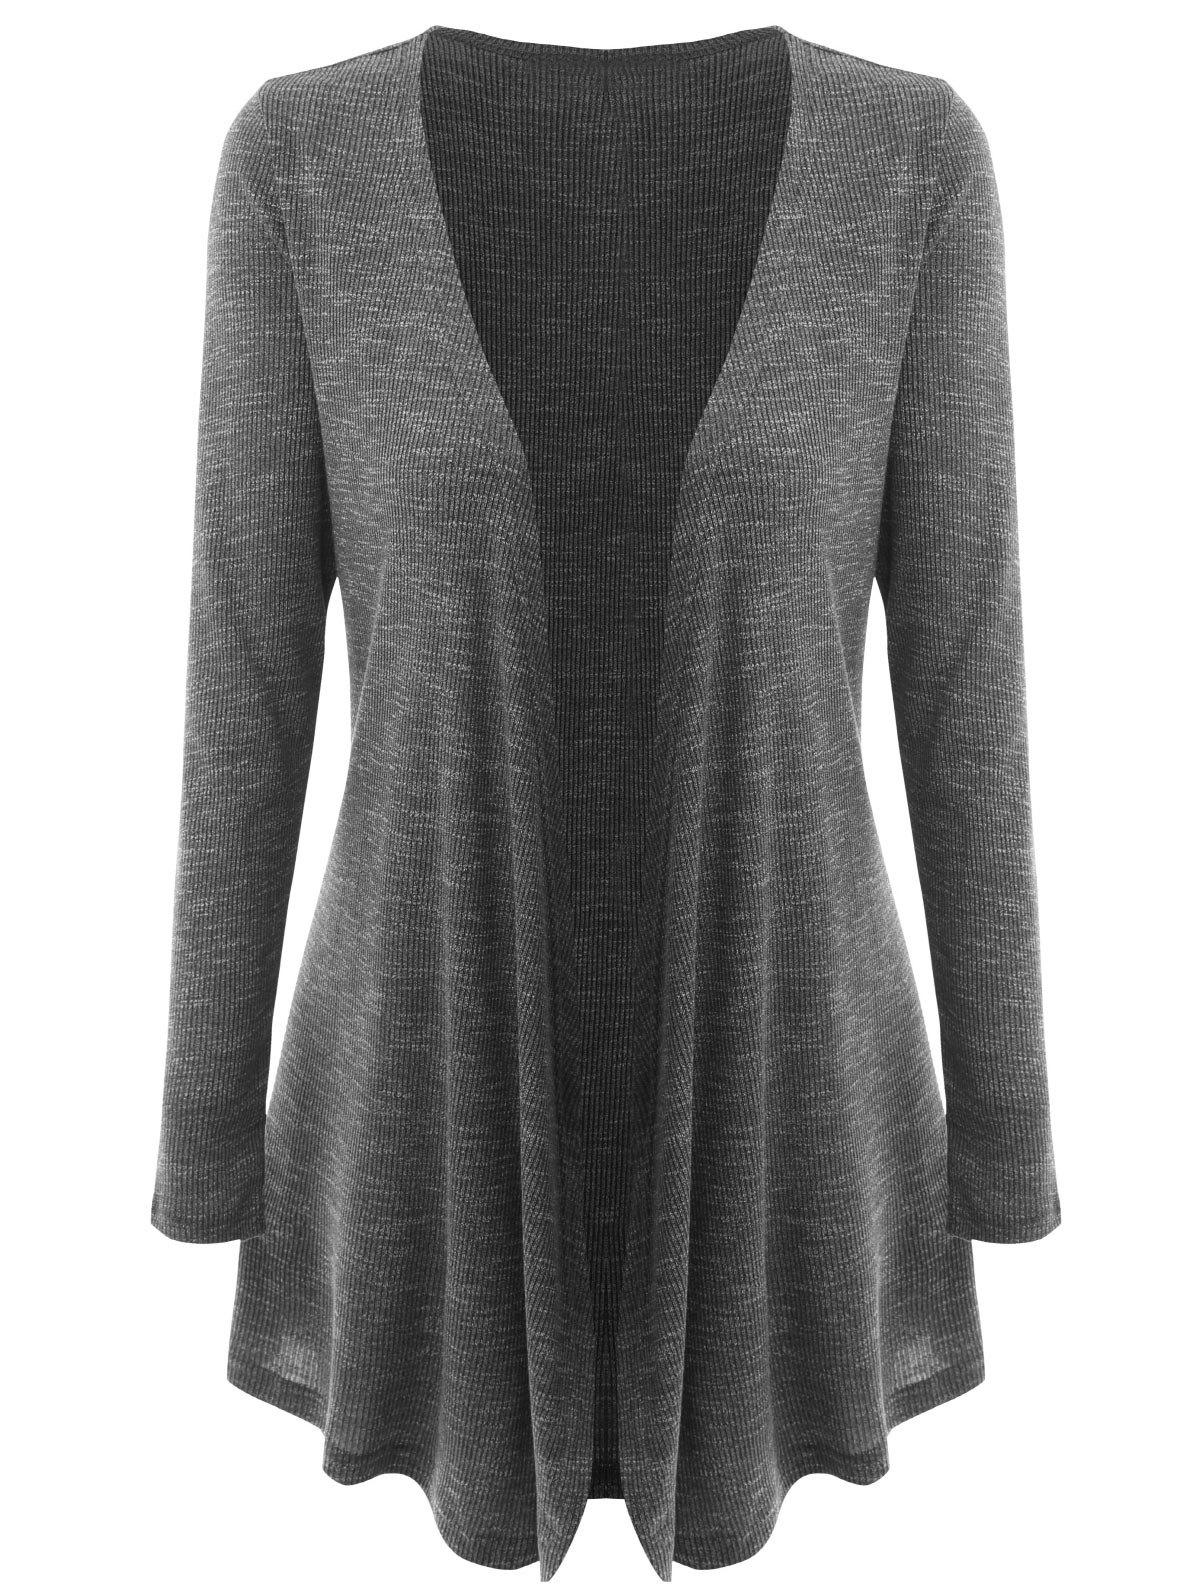 res langley hi country charcoal drapes cardigan womens johnny s outfitter women draped was sweater